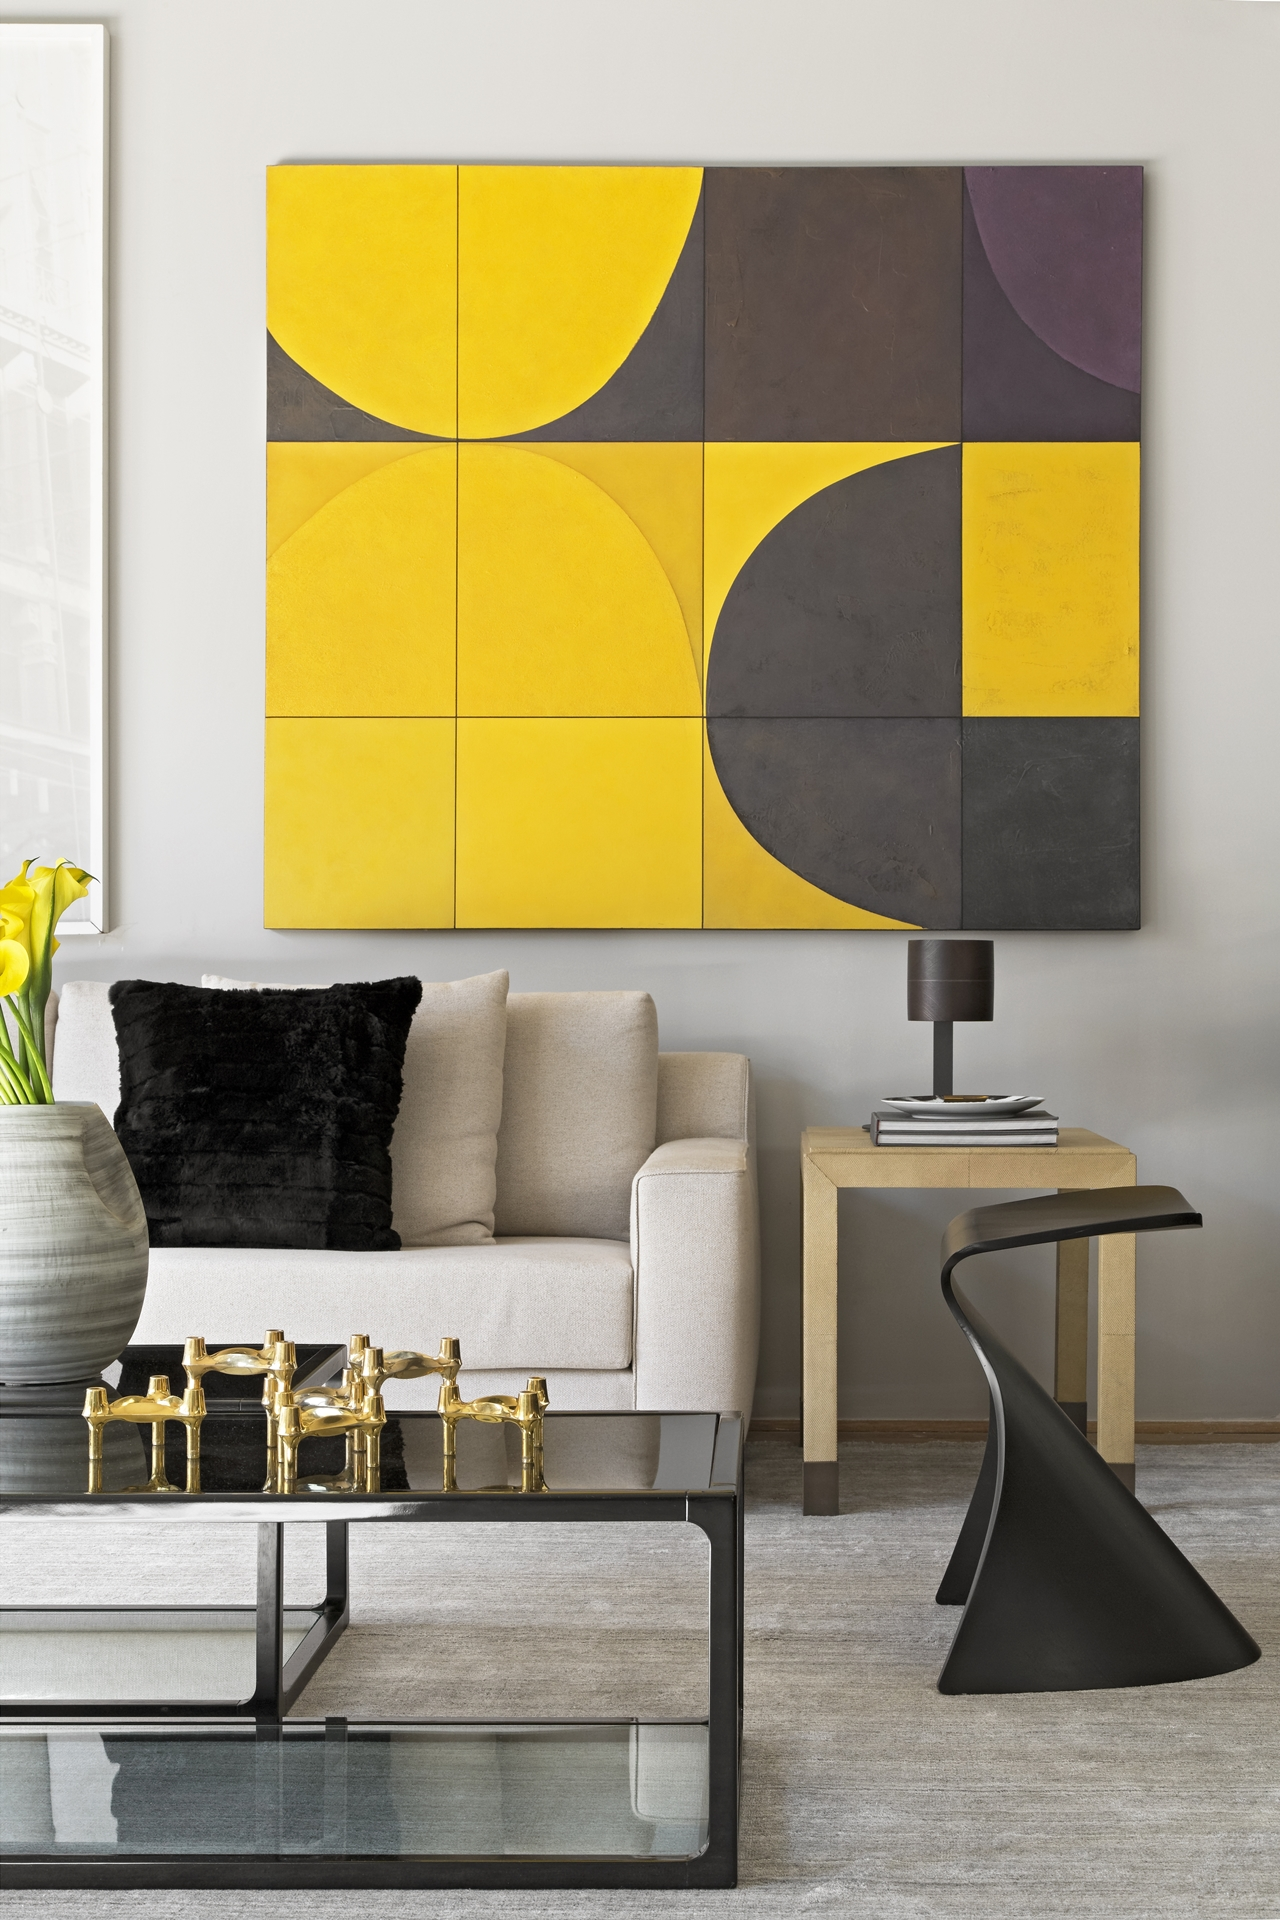 Yellow art piece in Itacolomi 445 apartment by Diego Revollo